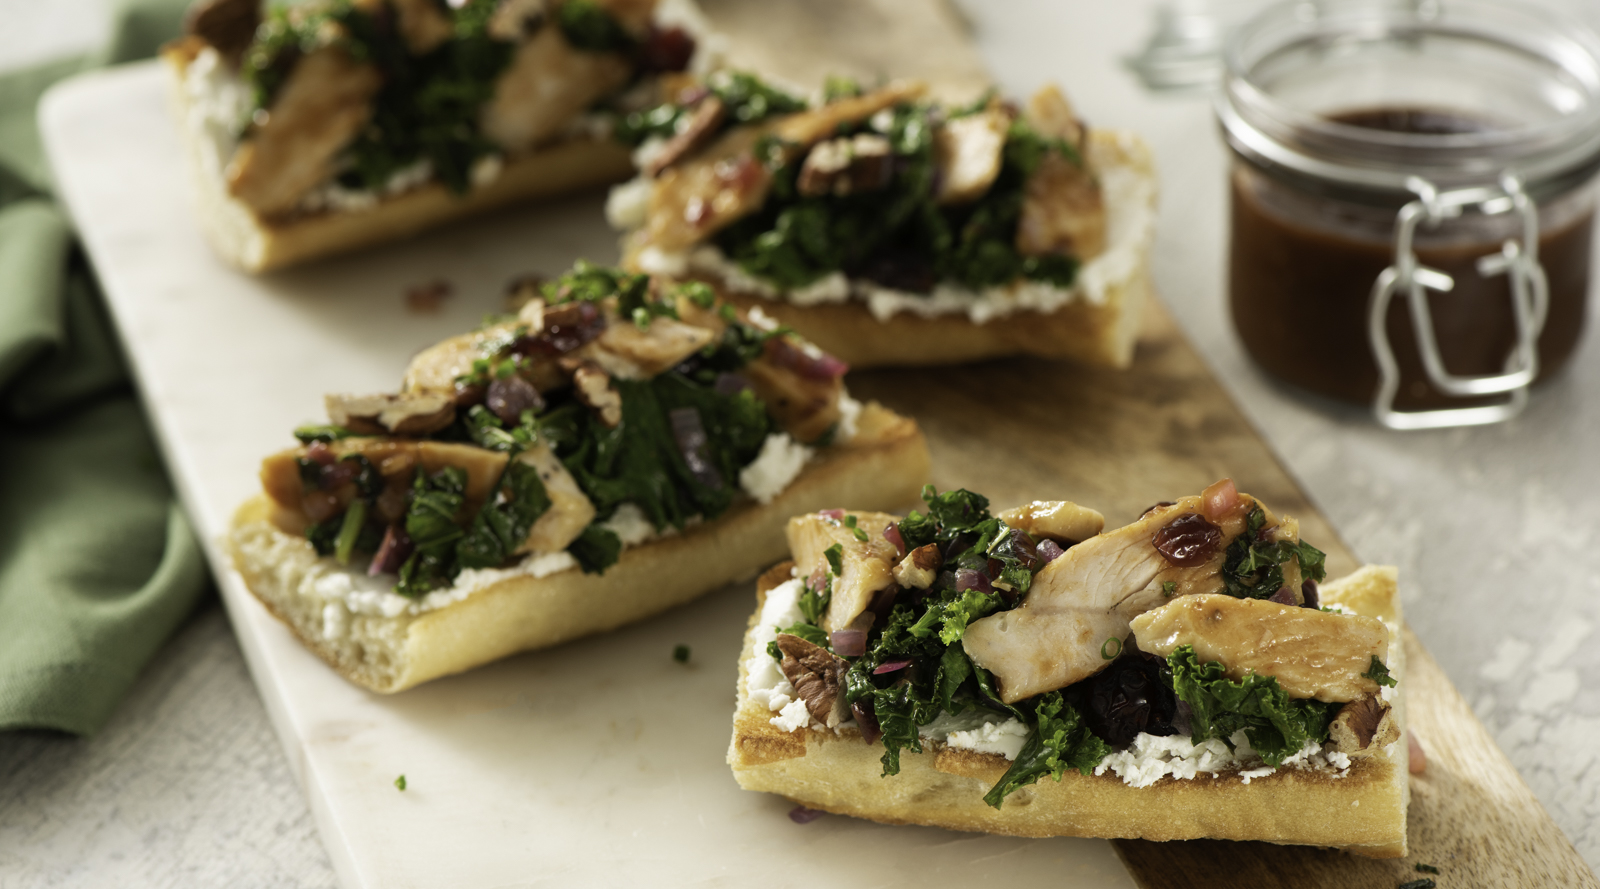 Sautéed Kale and Turkey Toasts